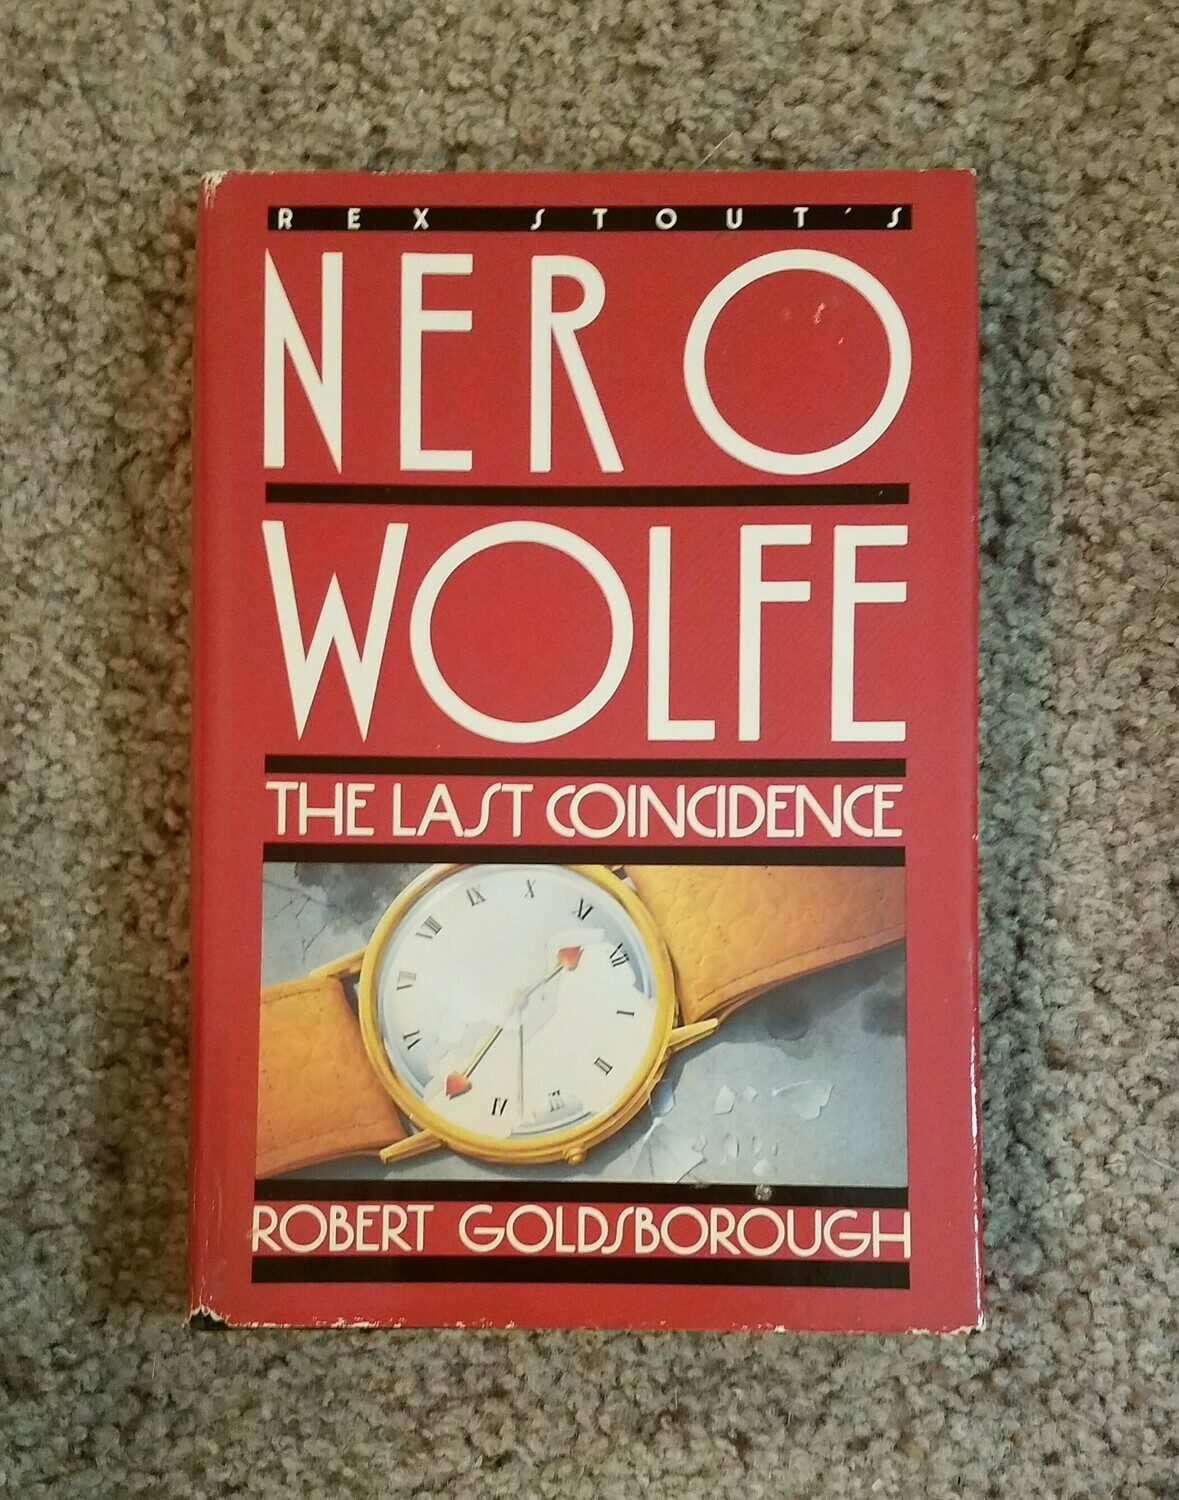 Nero Wolfe: The Last Coincidence by Robert Goldsborough